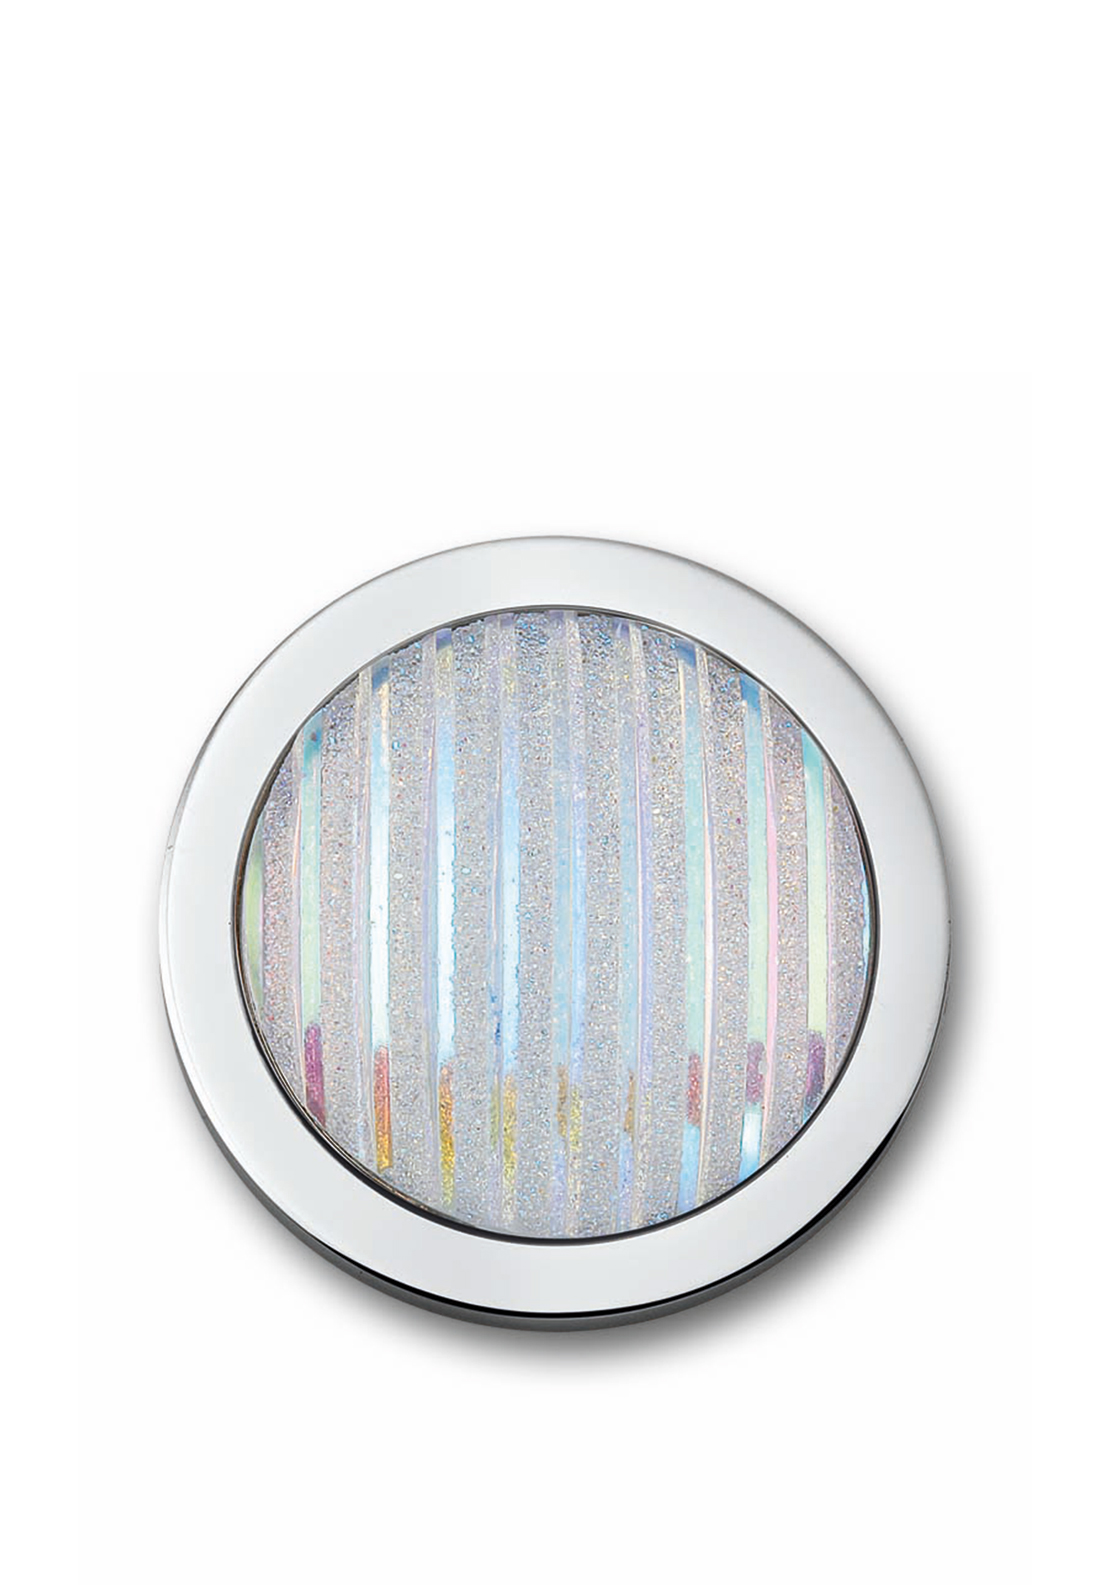 Mi Moneda Fiesta White Steel Coin Small